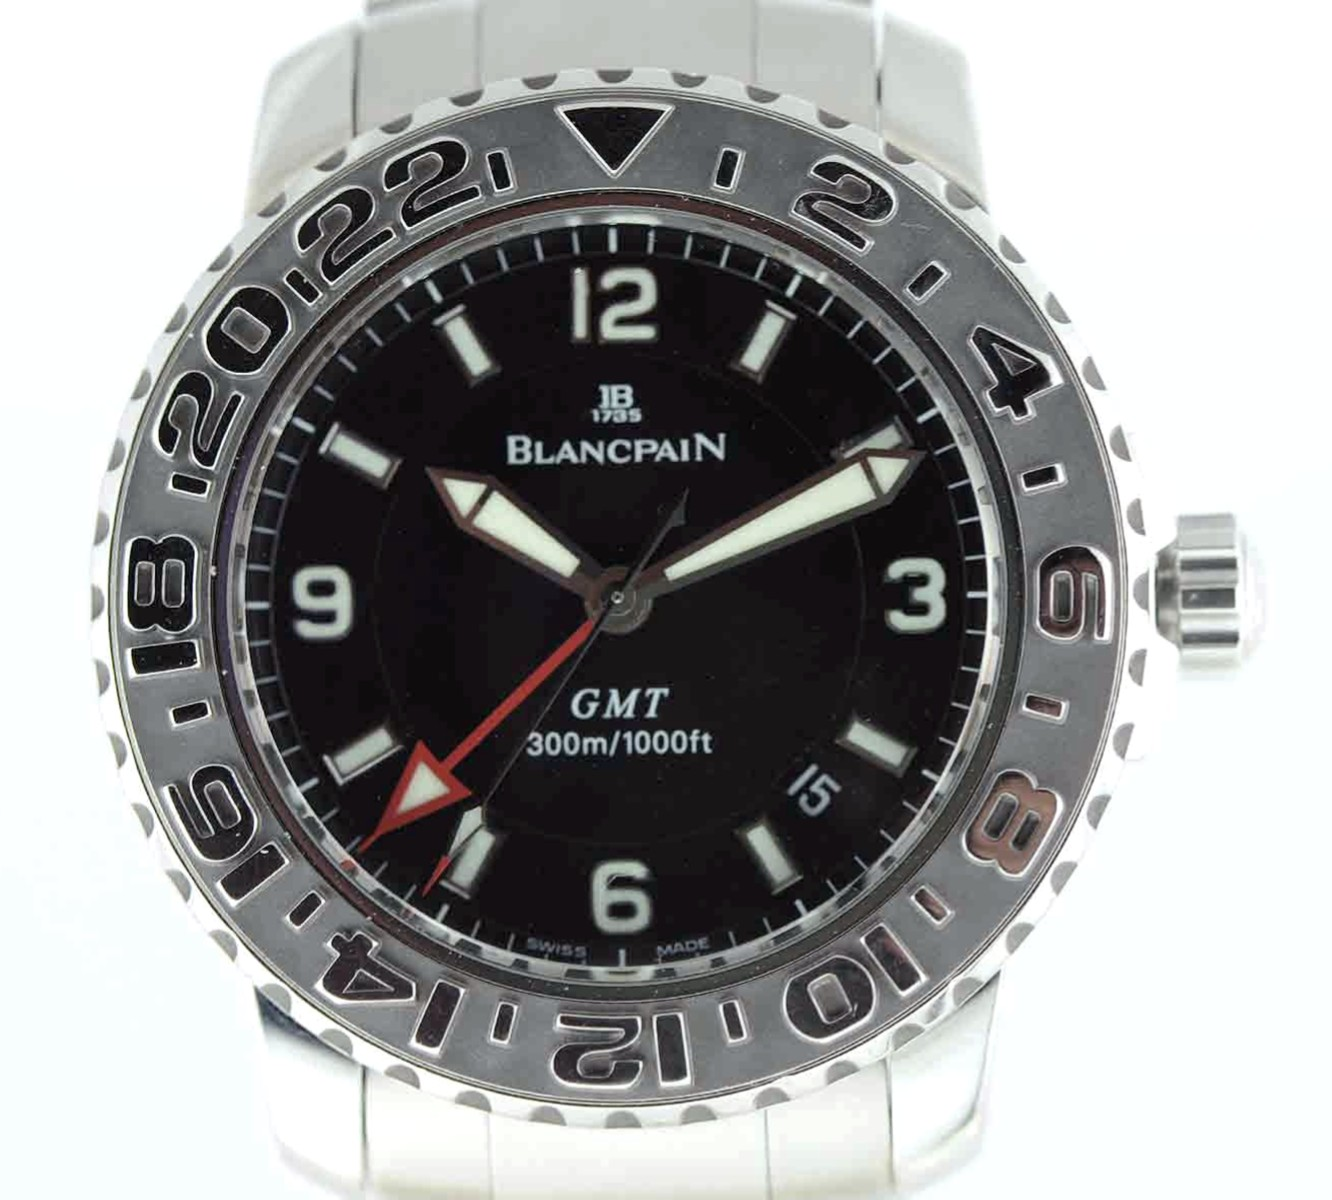 Blancpain Air Command Fifty Fathoms GMT Model No: 2250 1130 71